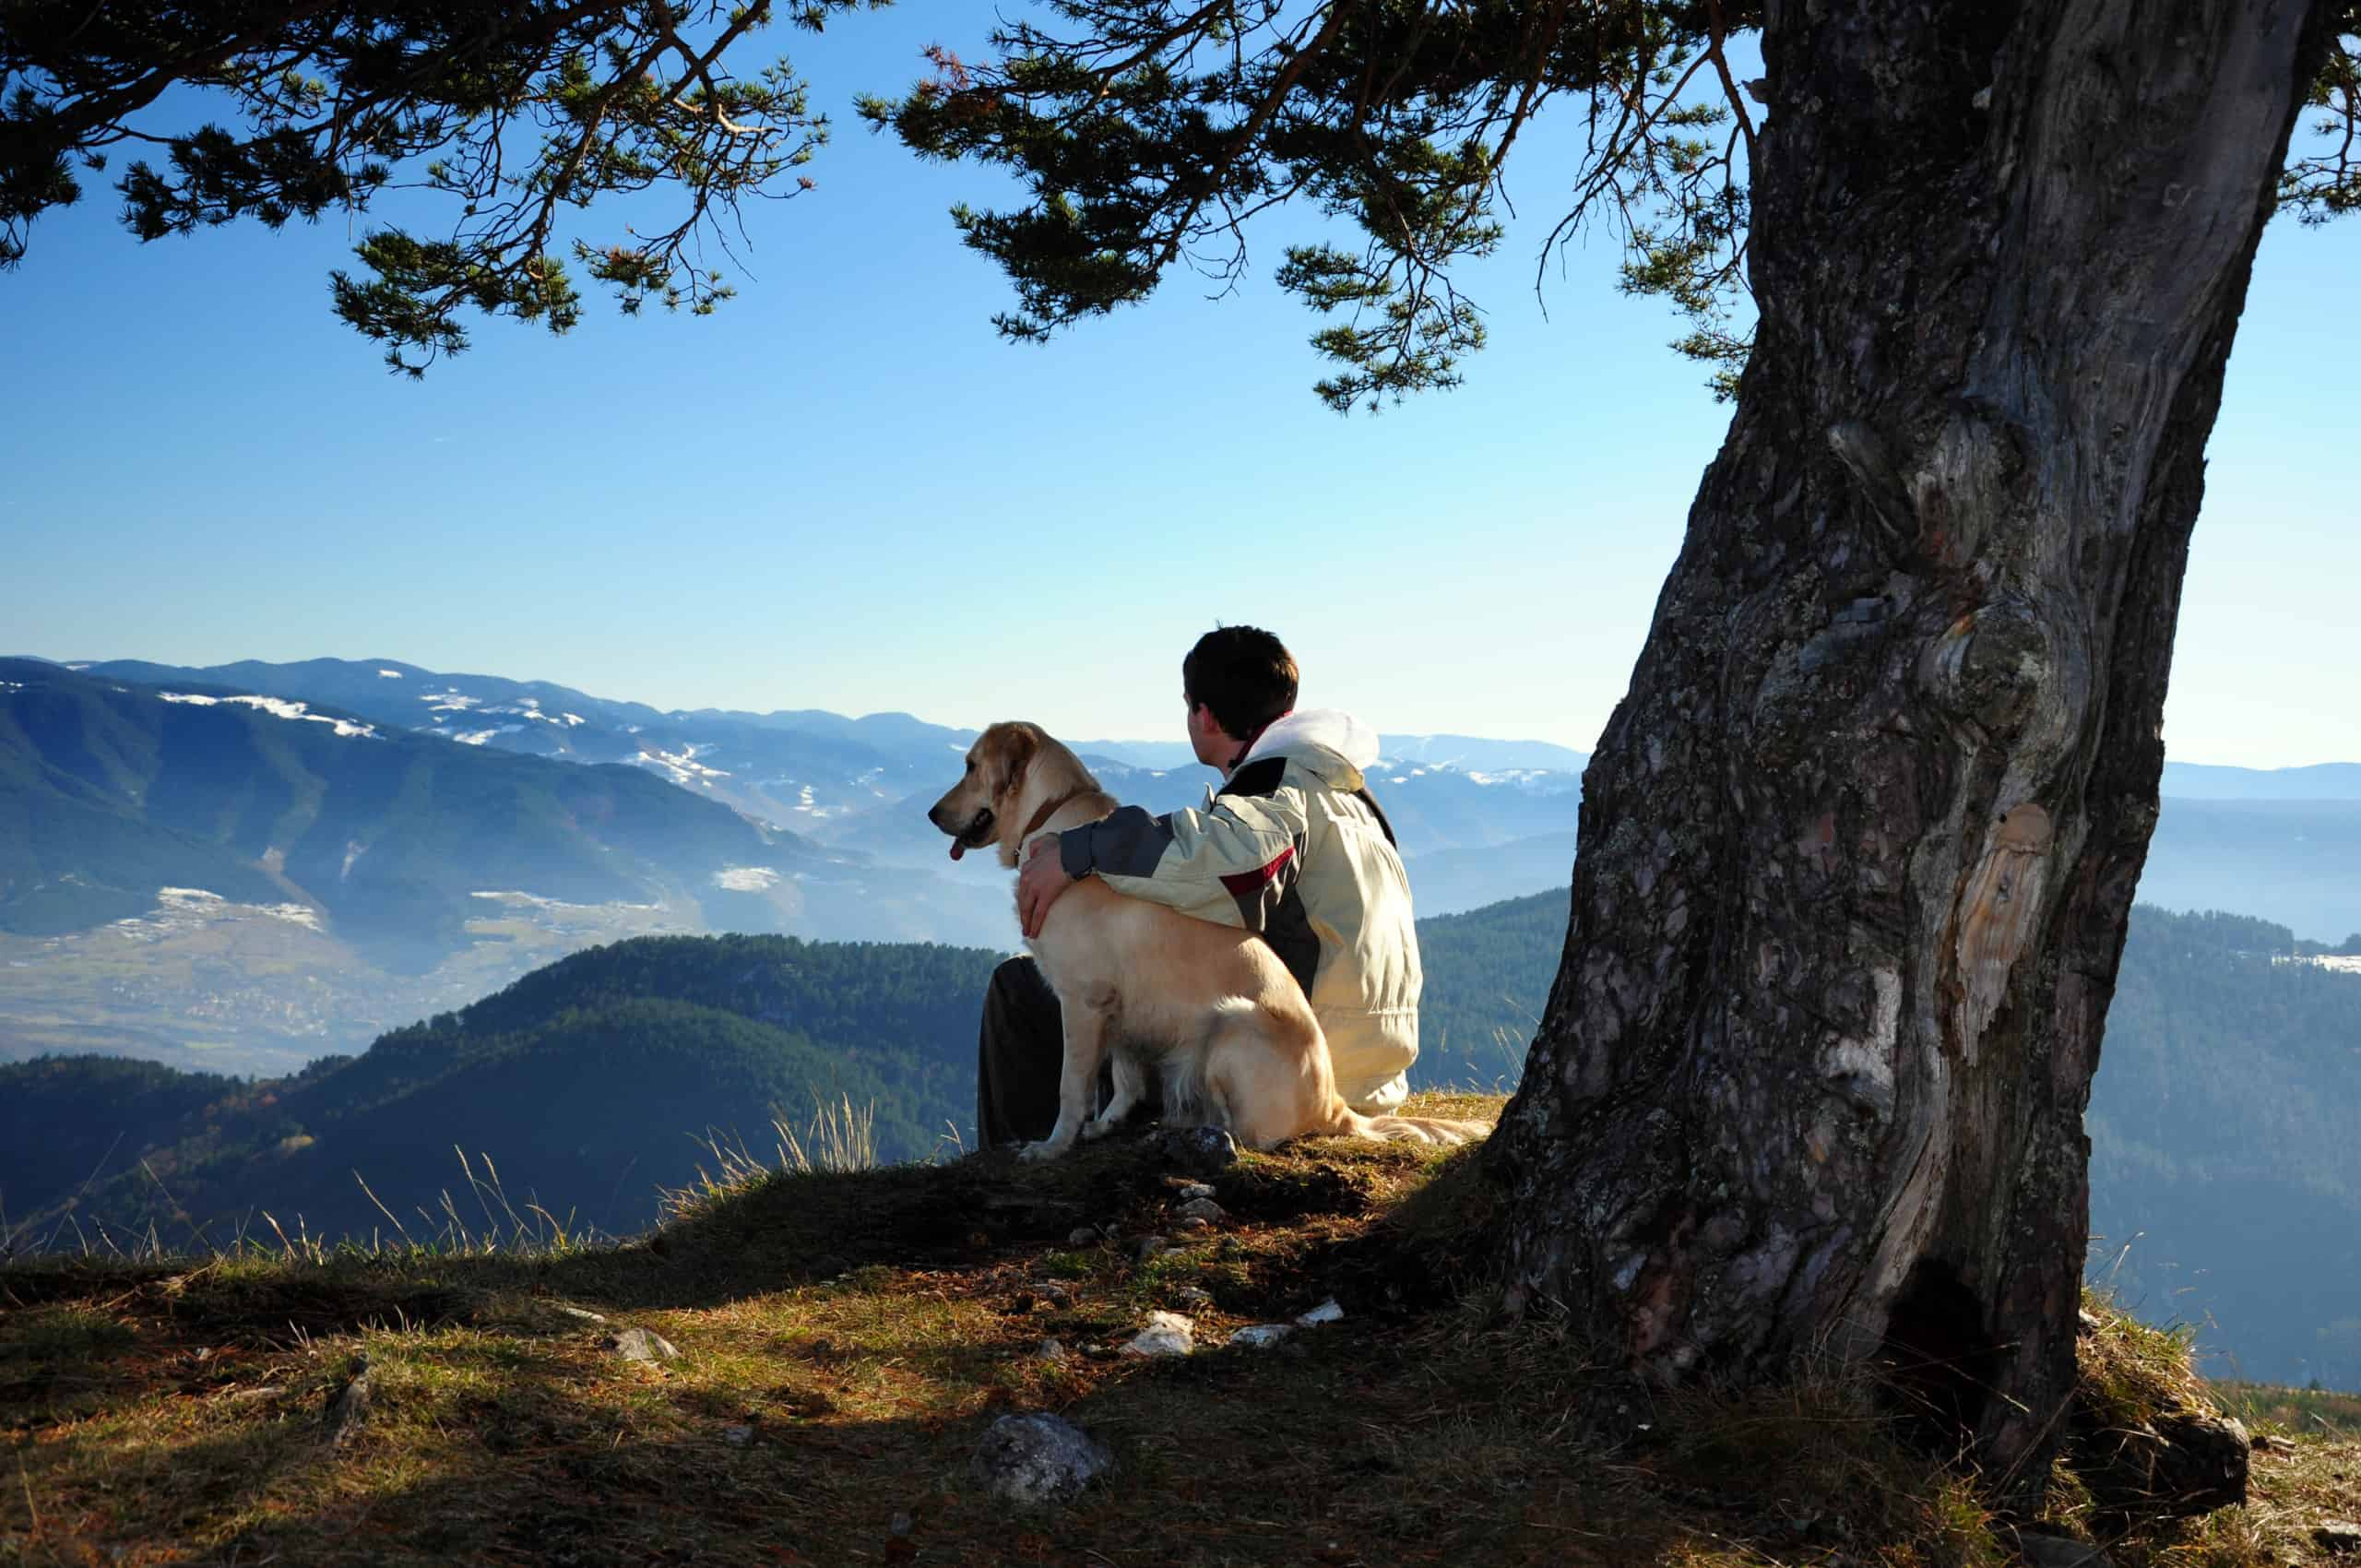 Supporting a Healthy Planet is central to all we do at Yitto Paws.